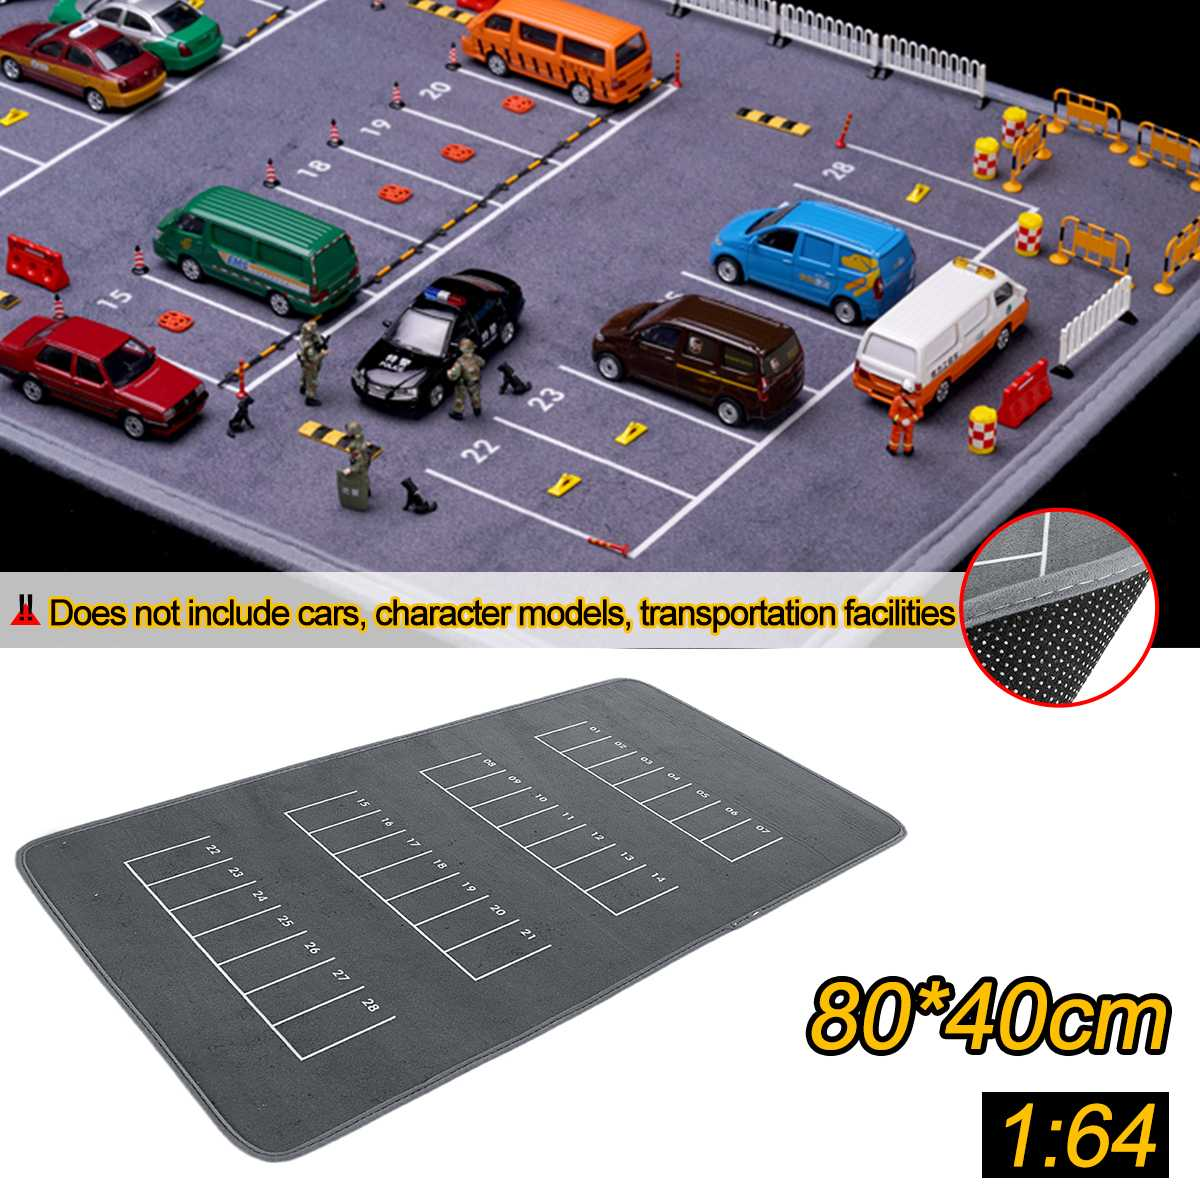 80x40cm 1/64 Anti-slip Rubbe Parking Pad Car Model Scene Road Game Pad For Desktop PC Laptop Computer Model Car